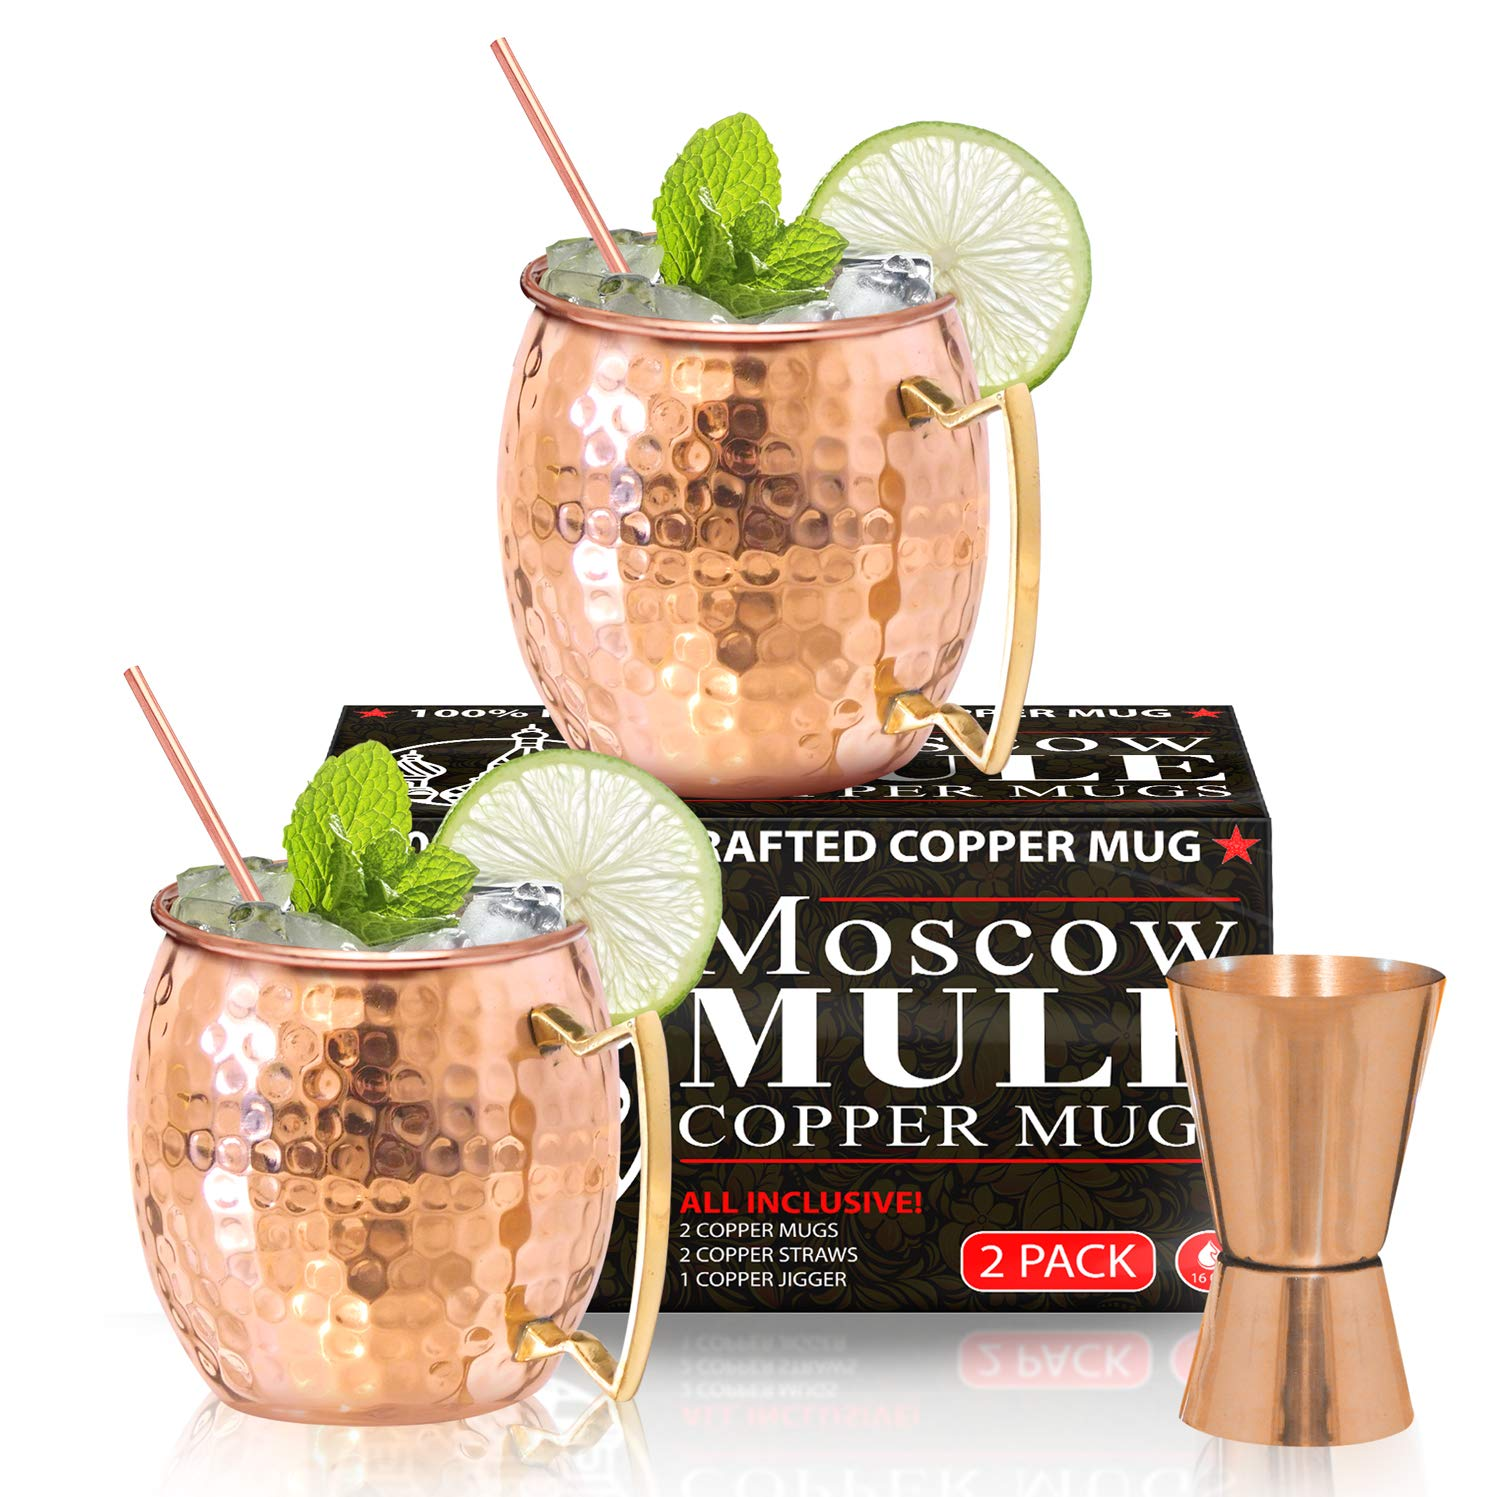 Benicci Moscow Mule Copper Mugs - Set of 2-100% HANDCRAFTED - Food Safe Pure Solid Copper Mugs - 16 oz Gift Set with BONUS: Highest Quality Cocktail Copper Straws and Jigger!